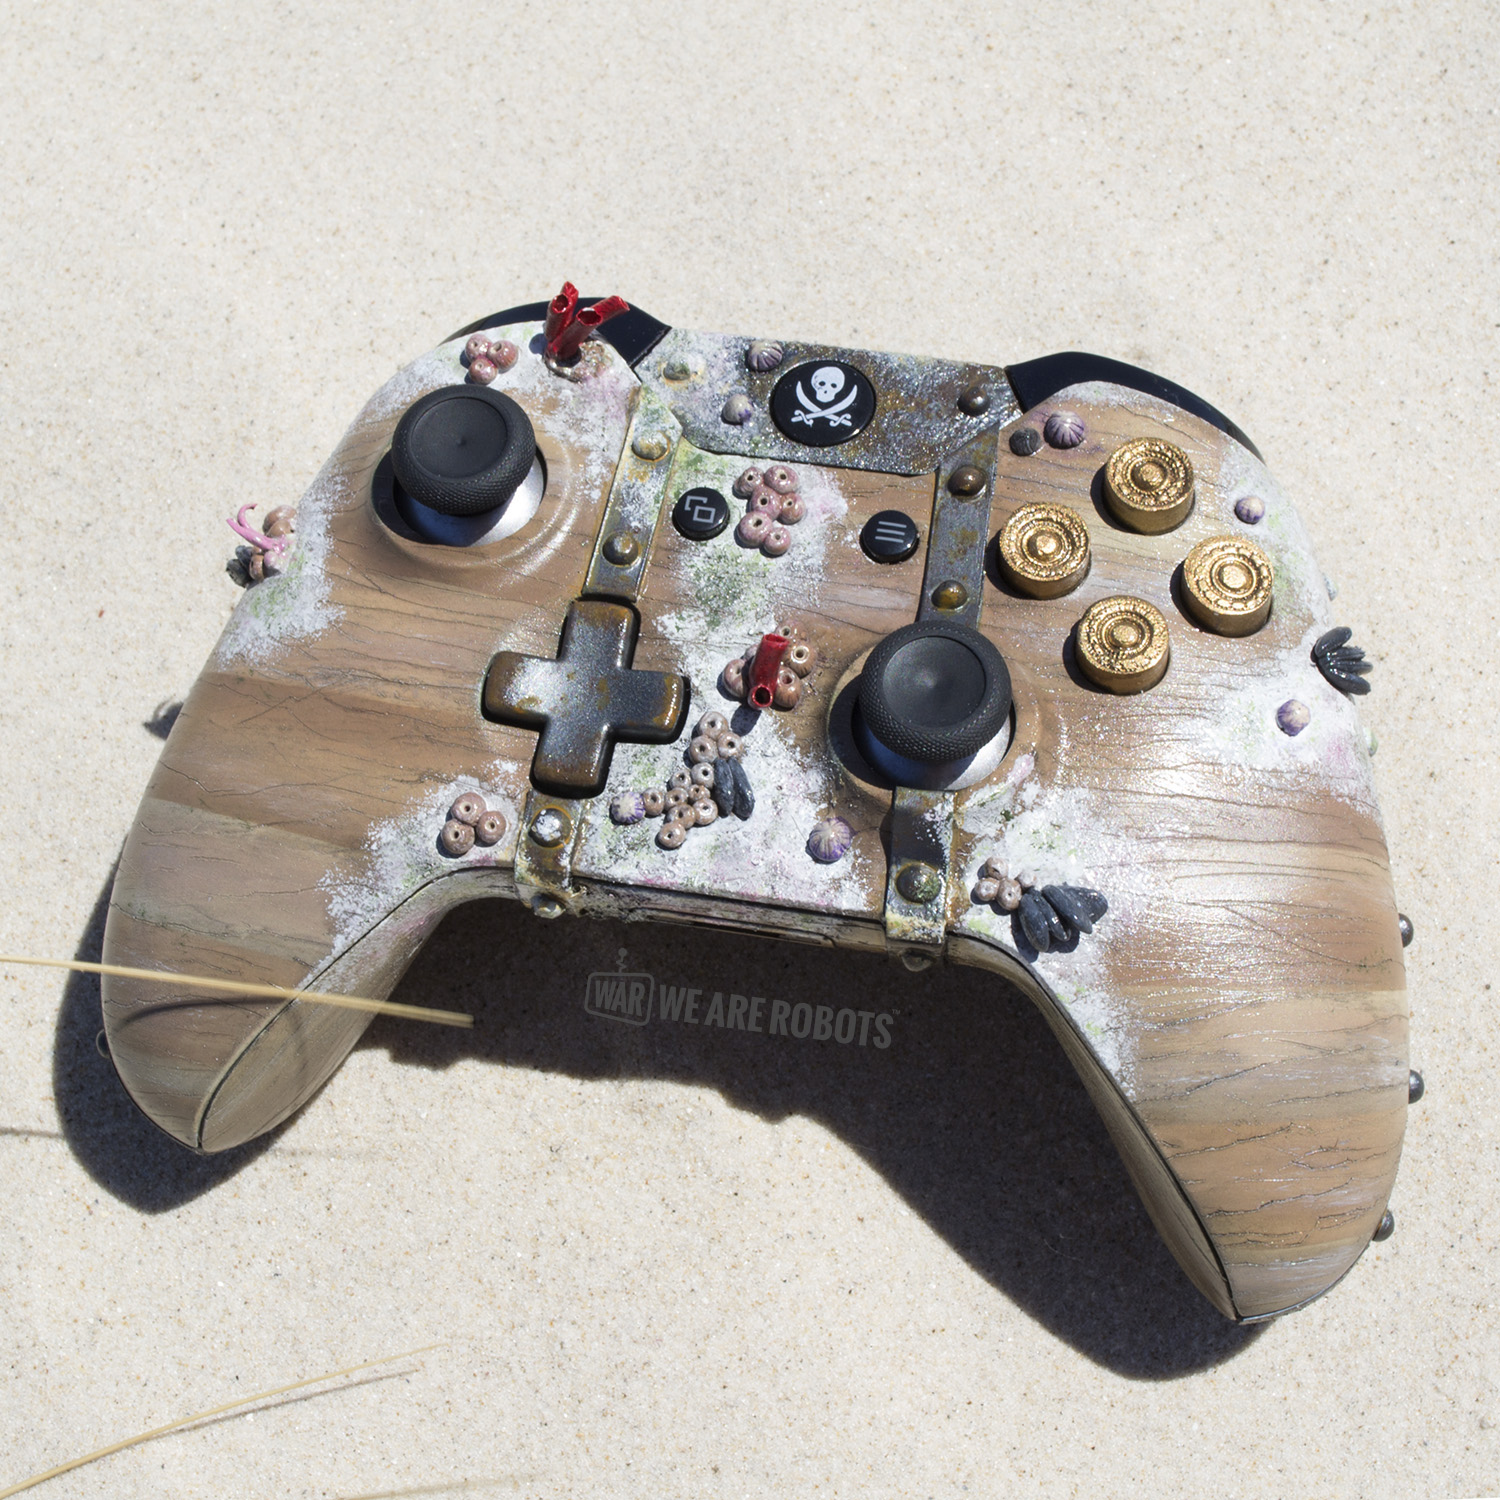 Sea f Thieves Custom Controller We Are Robots